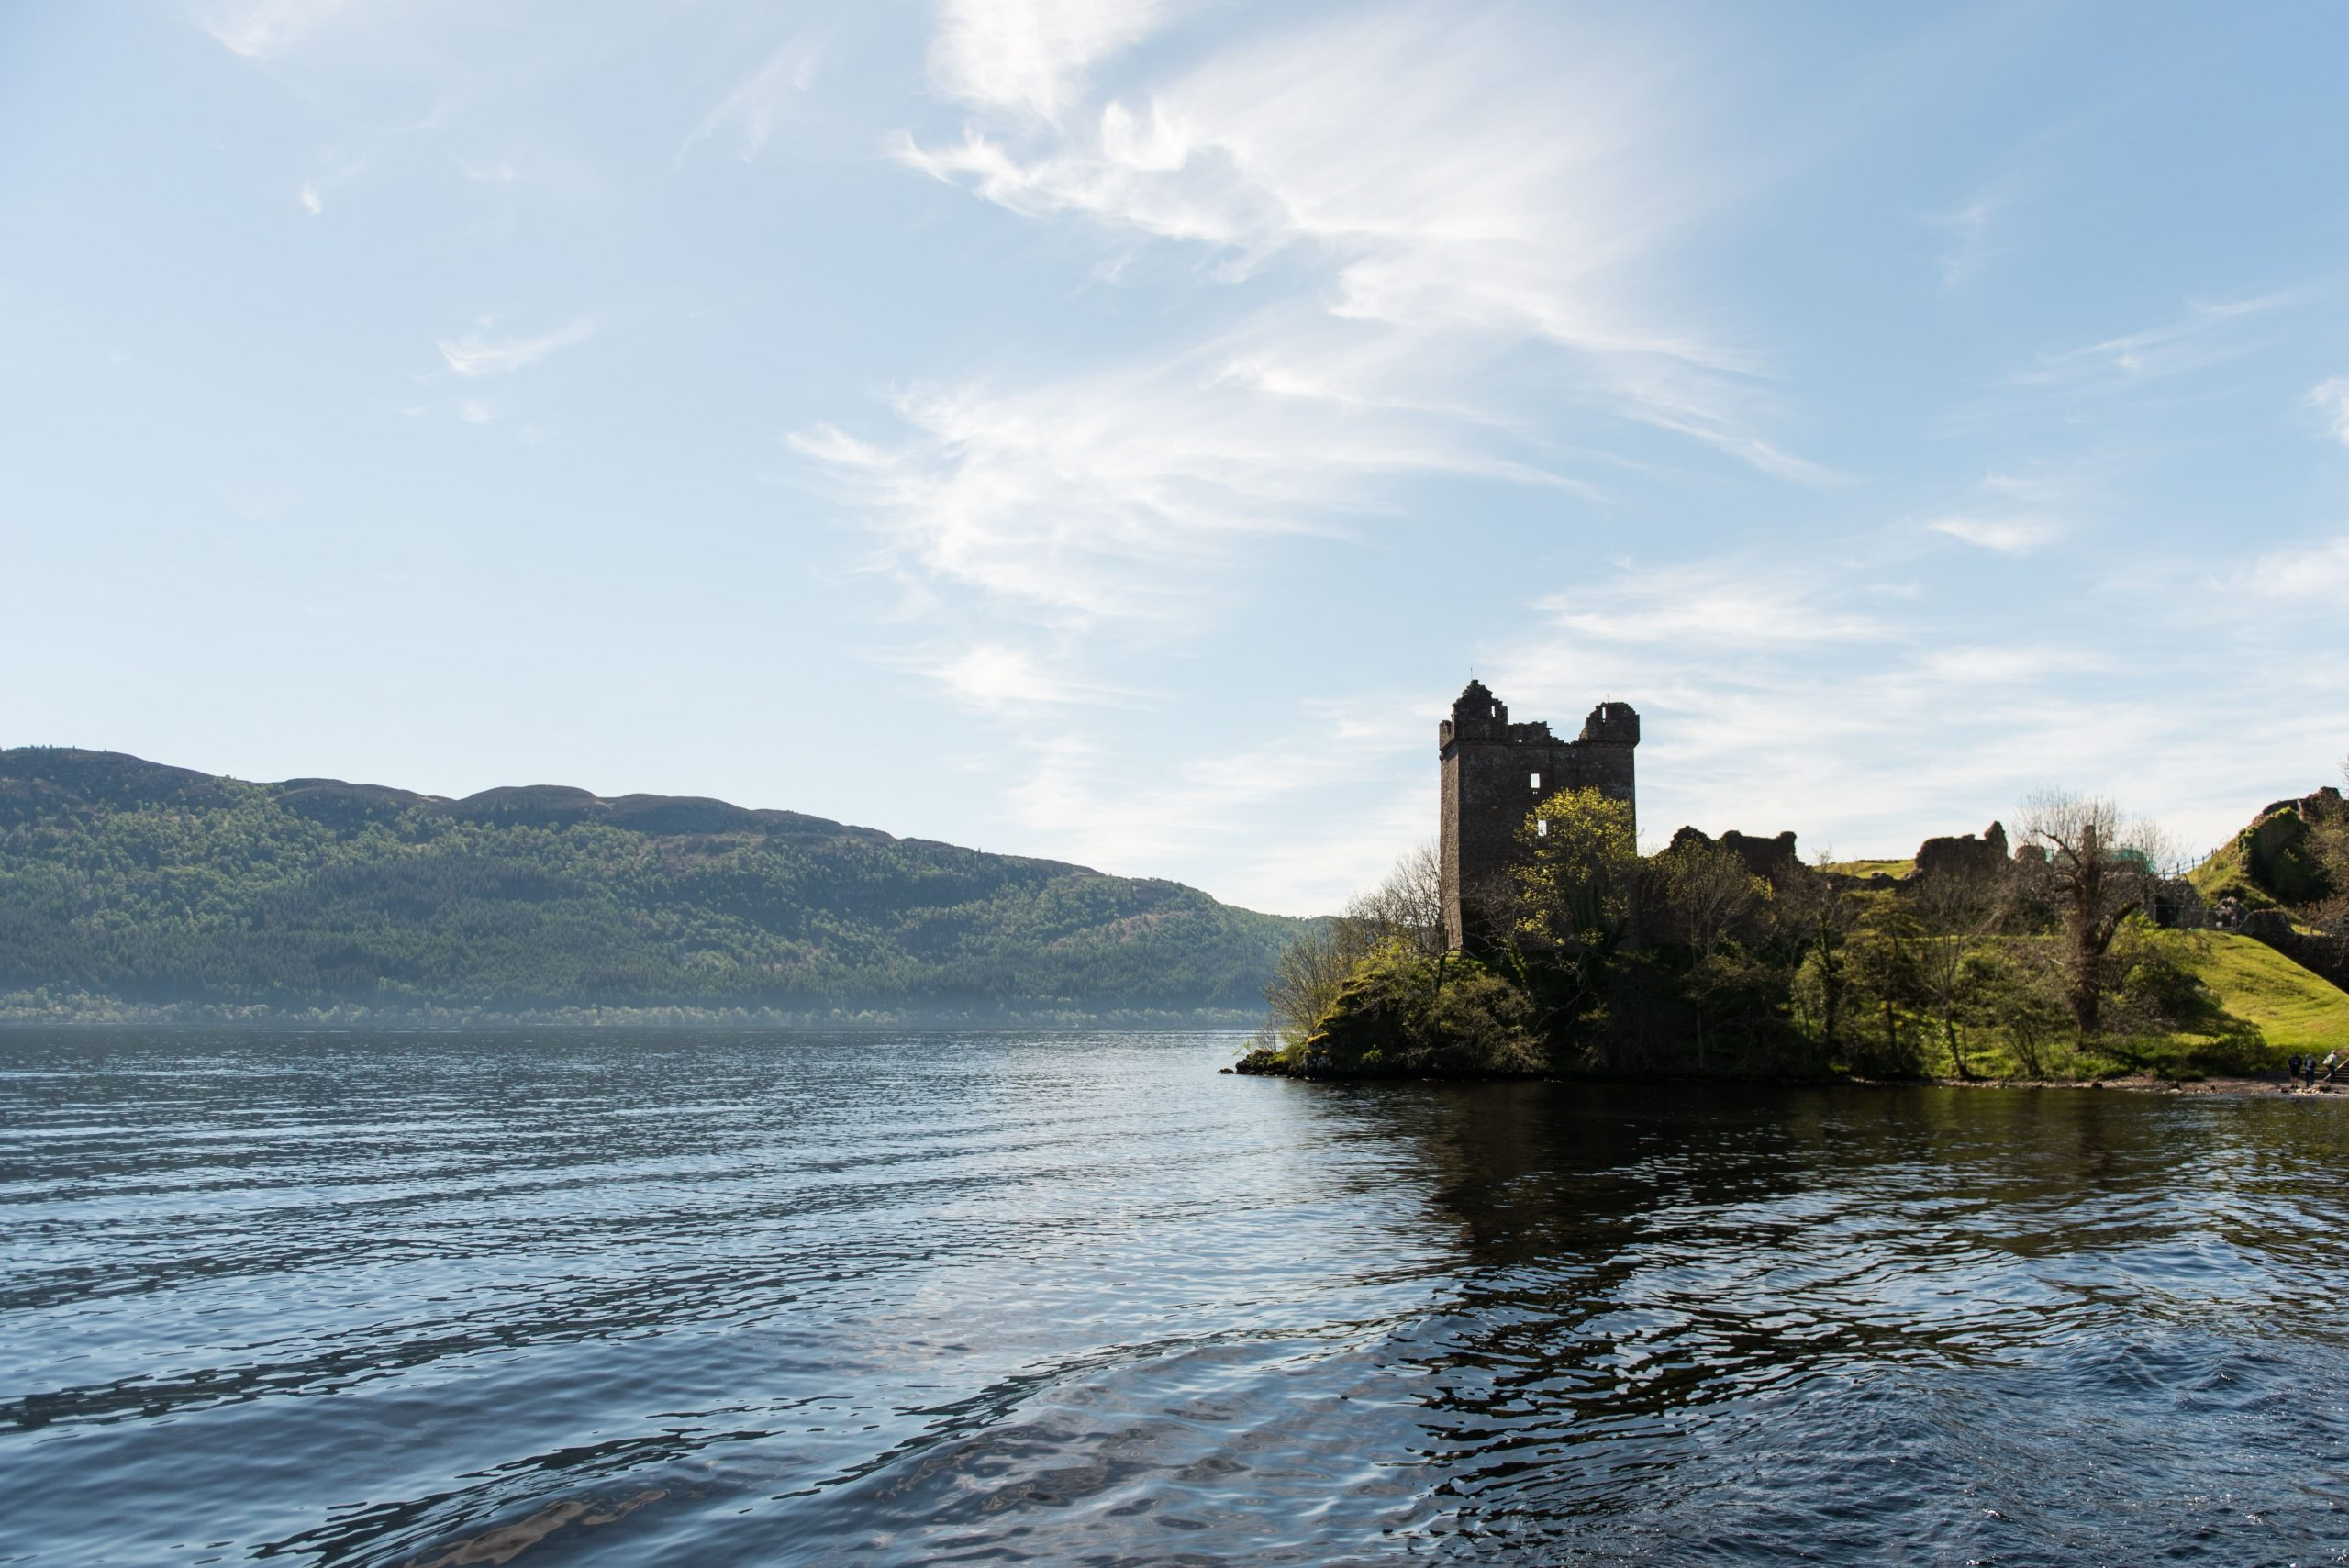 The shores of Loch Ness will be home to a 450MW pumped storage hydro scheme